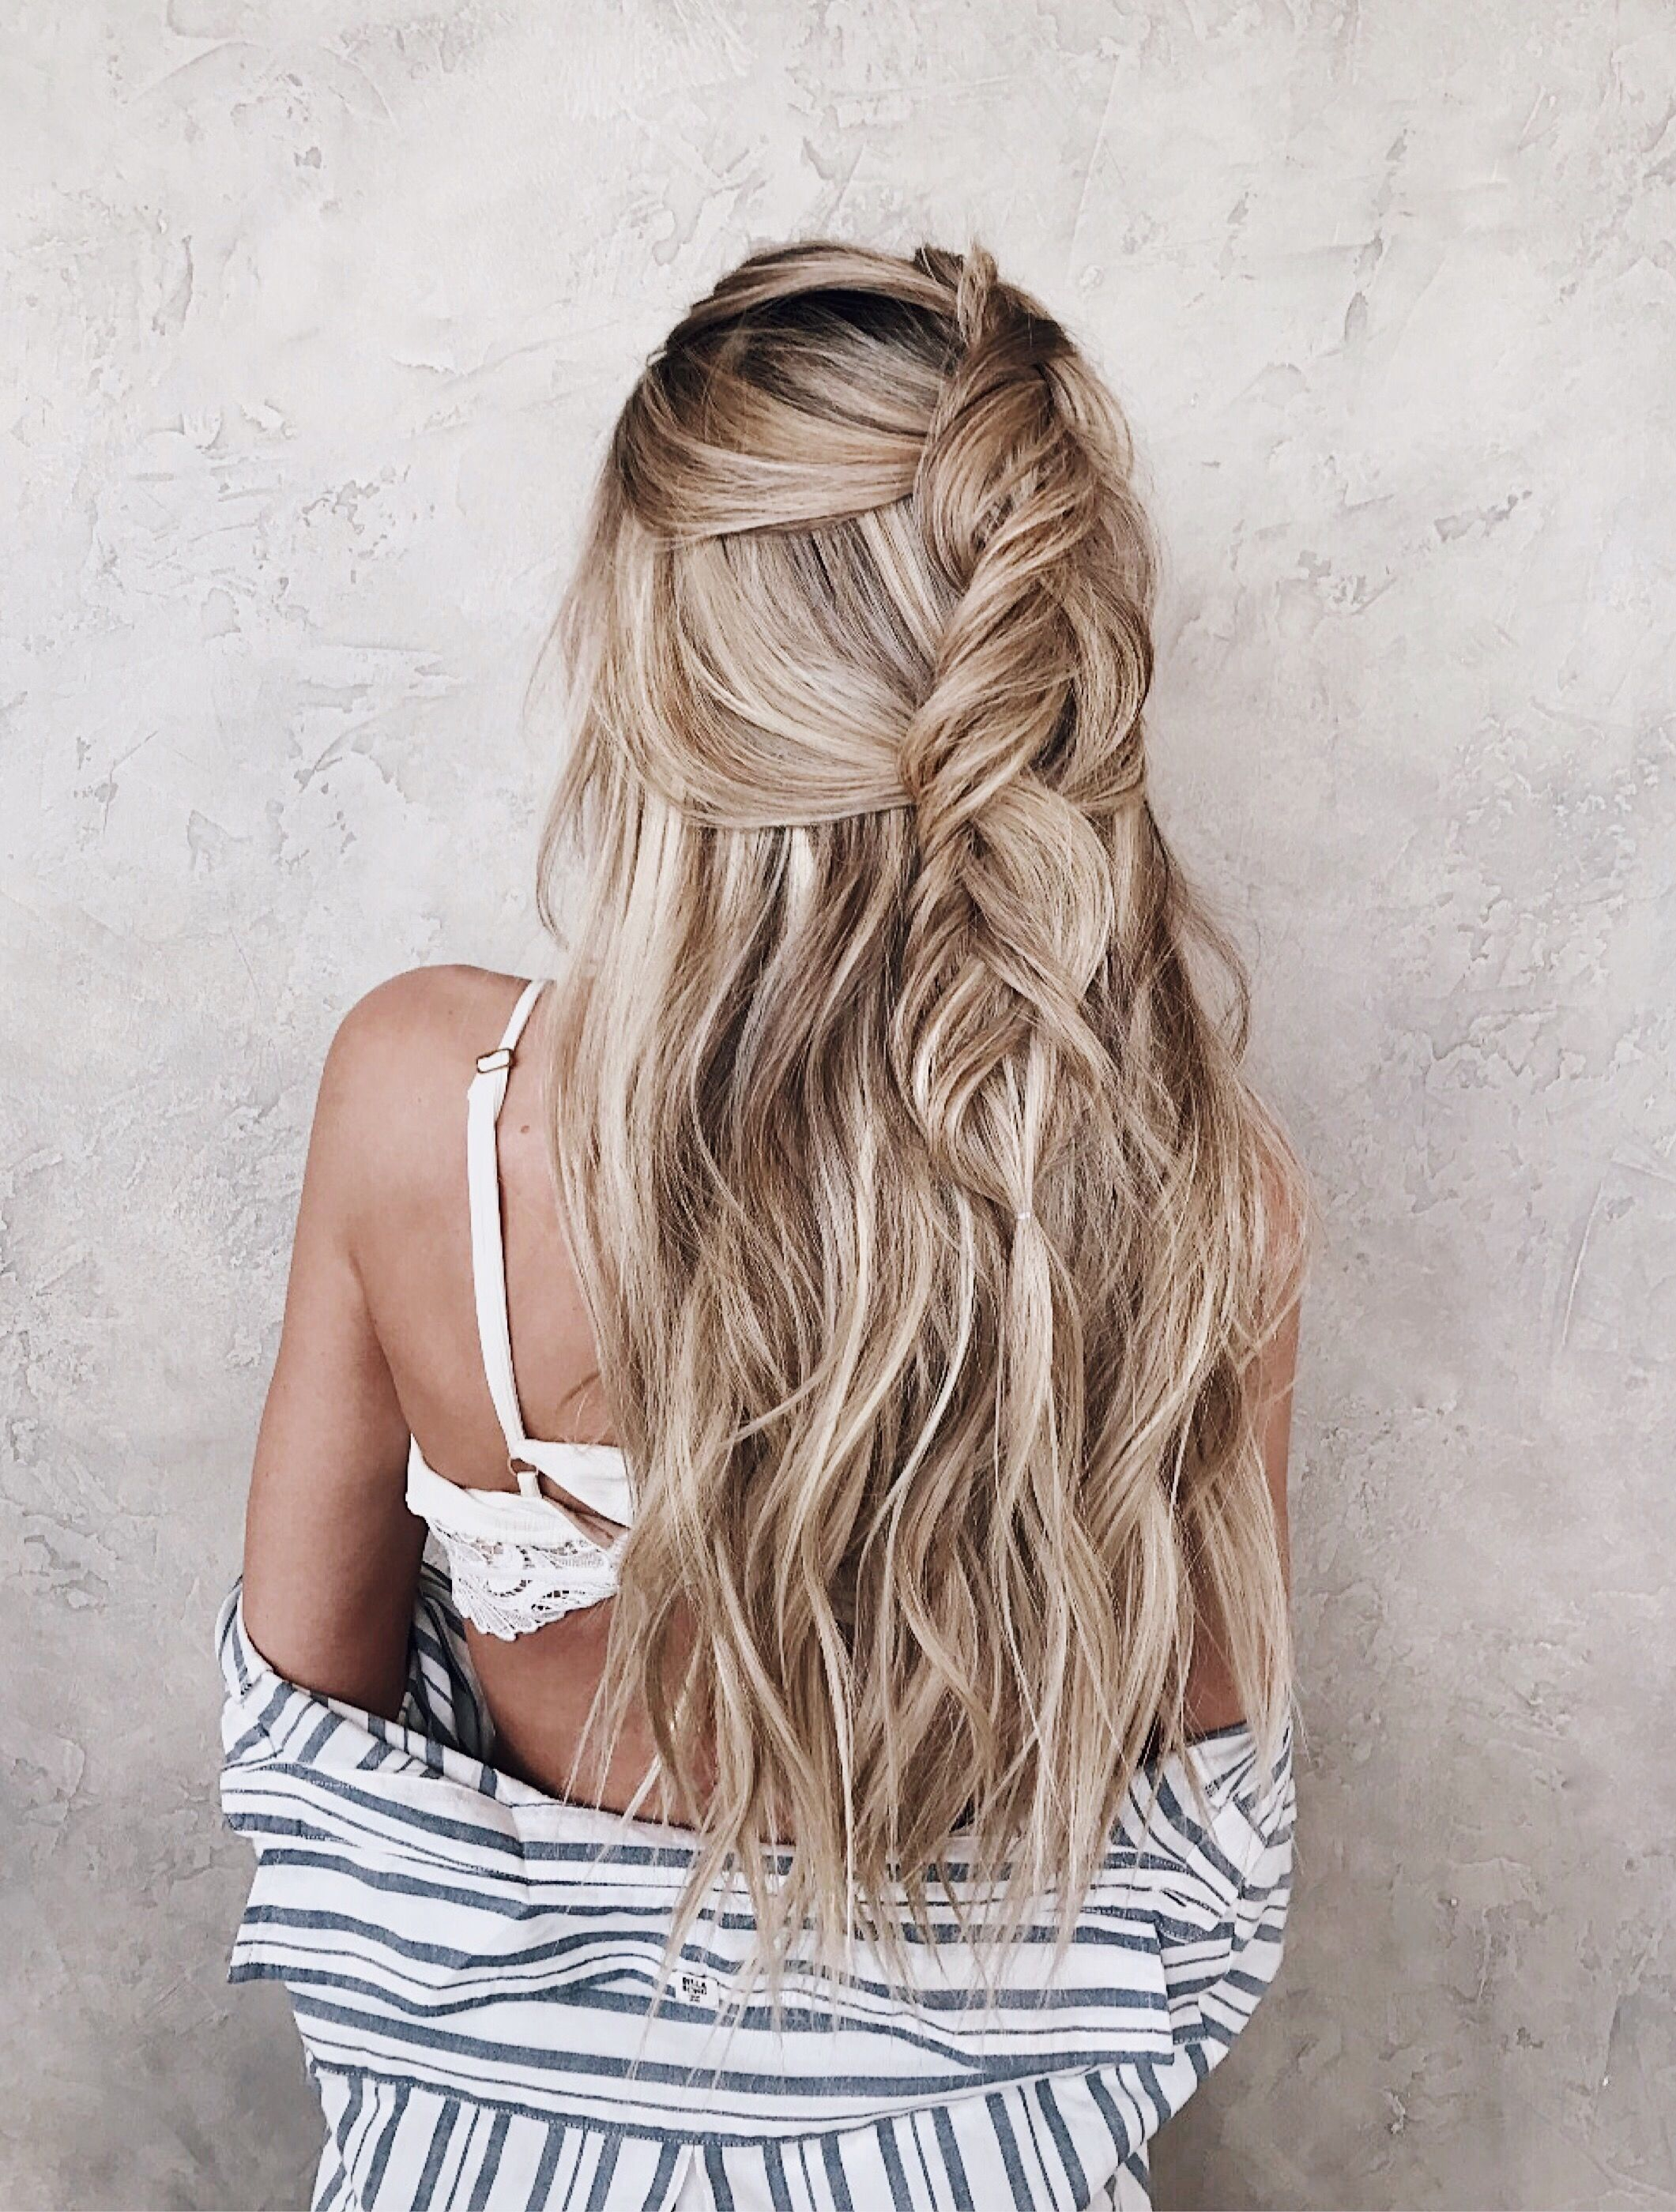 Beach Hairstyles Adorable Loose Blond Braid Half Up Hairstyle Beach Hair Fleurpinterest